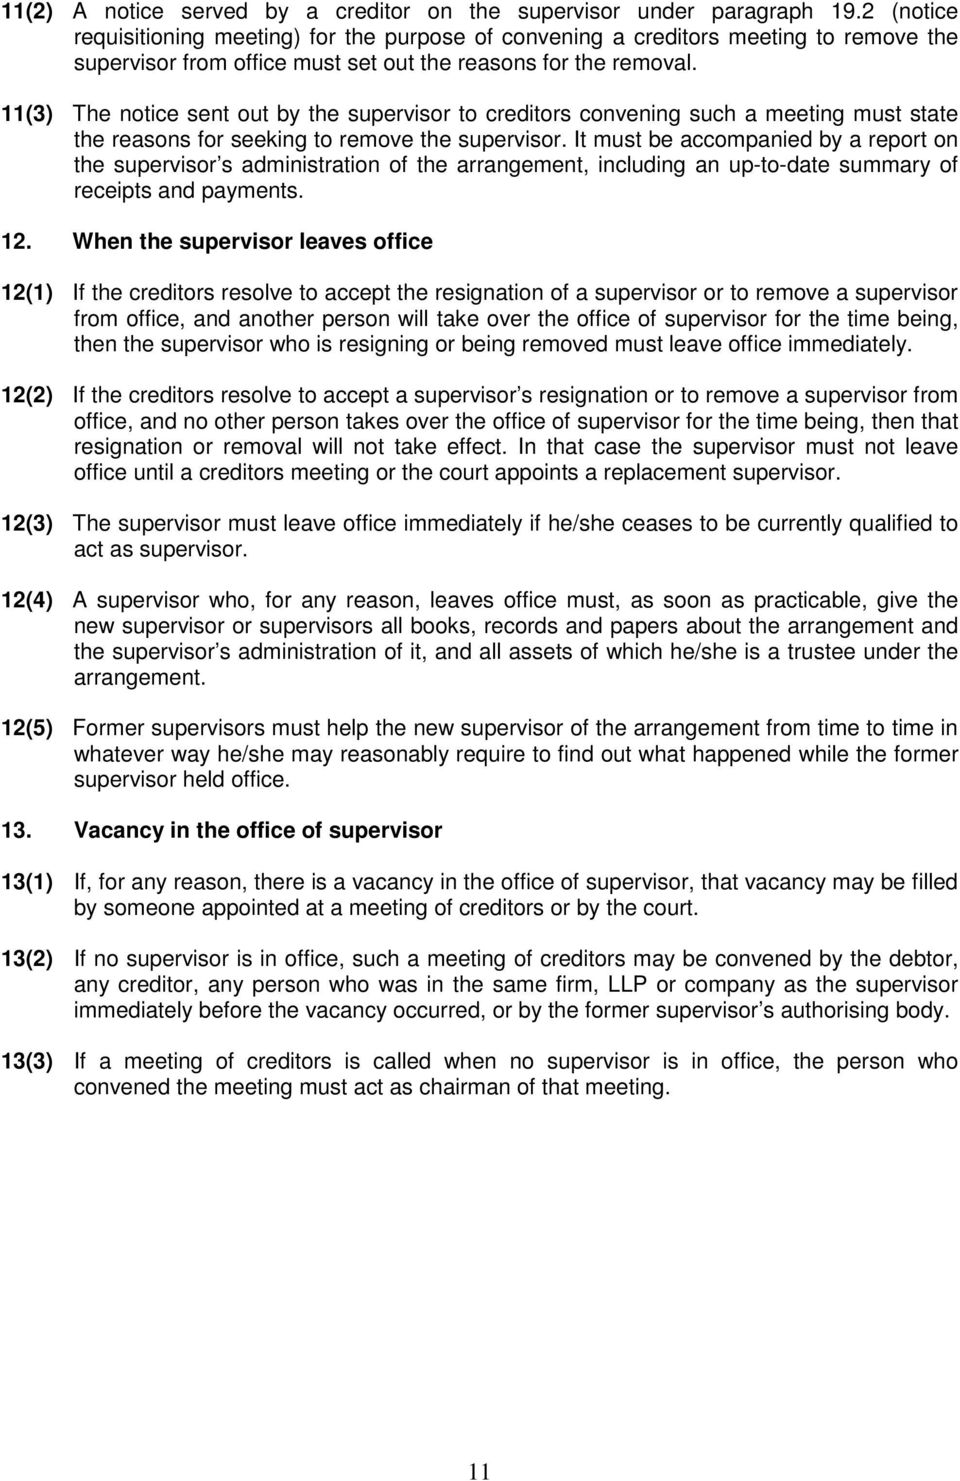 11(3) The notice sent out by the supervisor to creditors convening such a meeting must state the reasons for seeking to remove the supervisor.